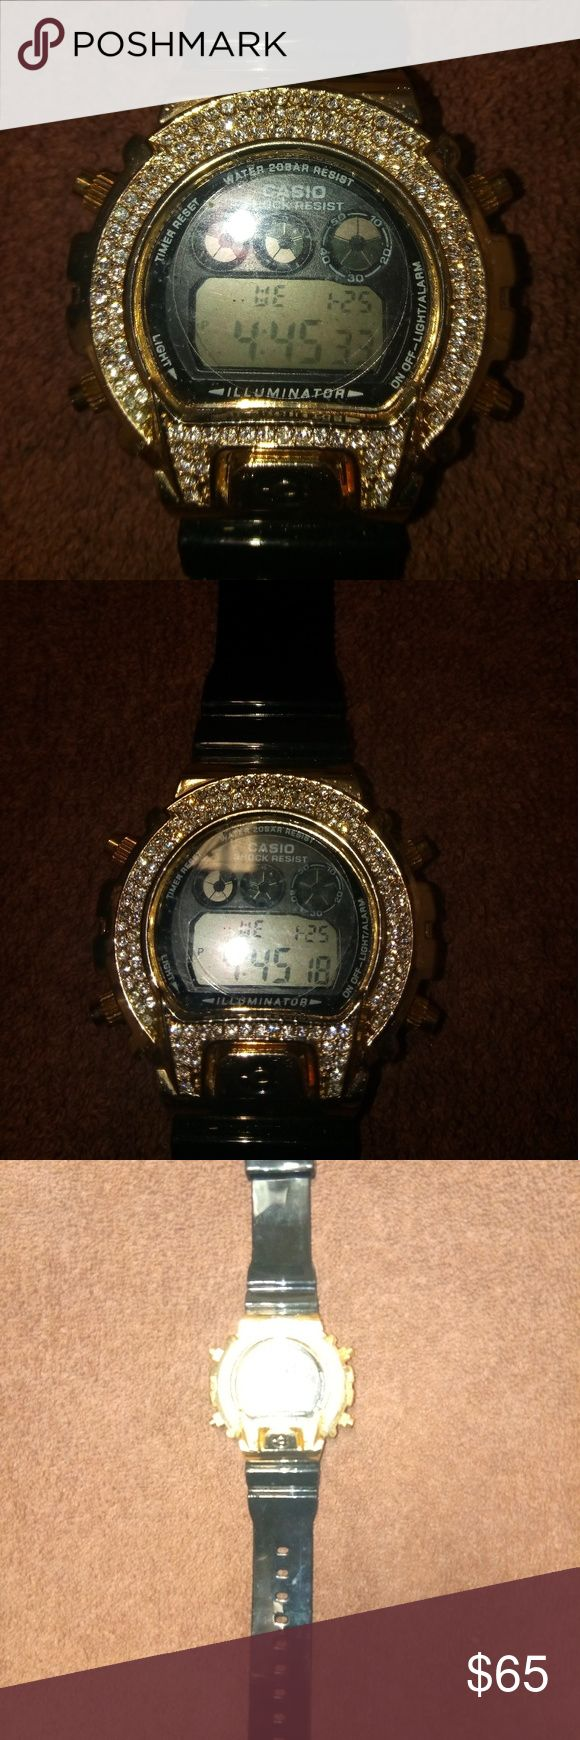 G Shock Watch Iced Out G Shock Watch Iced Out New.                                        Very Nice.Great Christmas Gift casio Accessories Watches